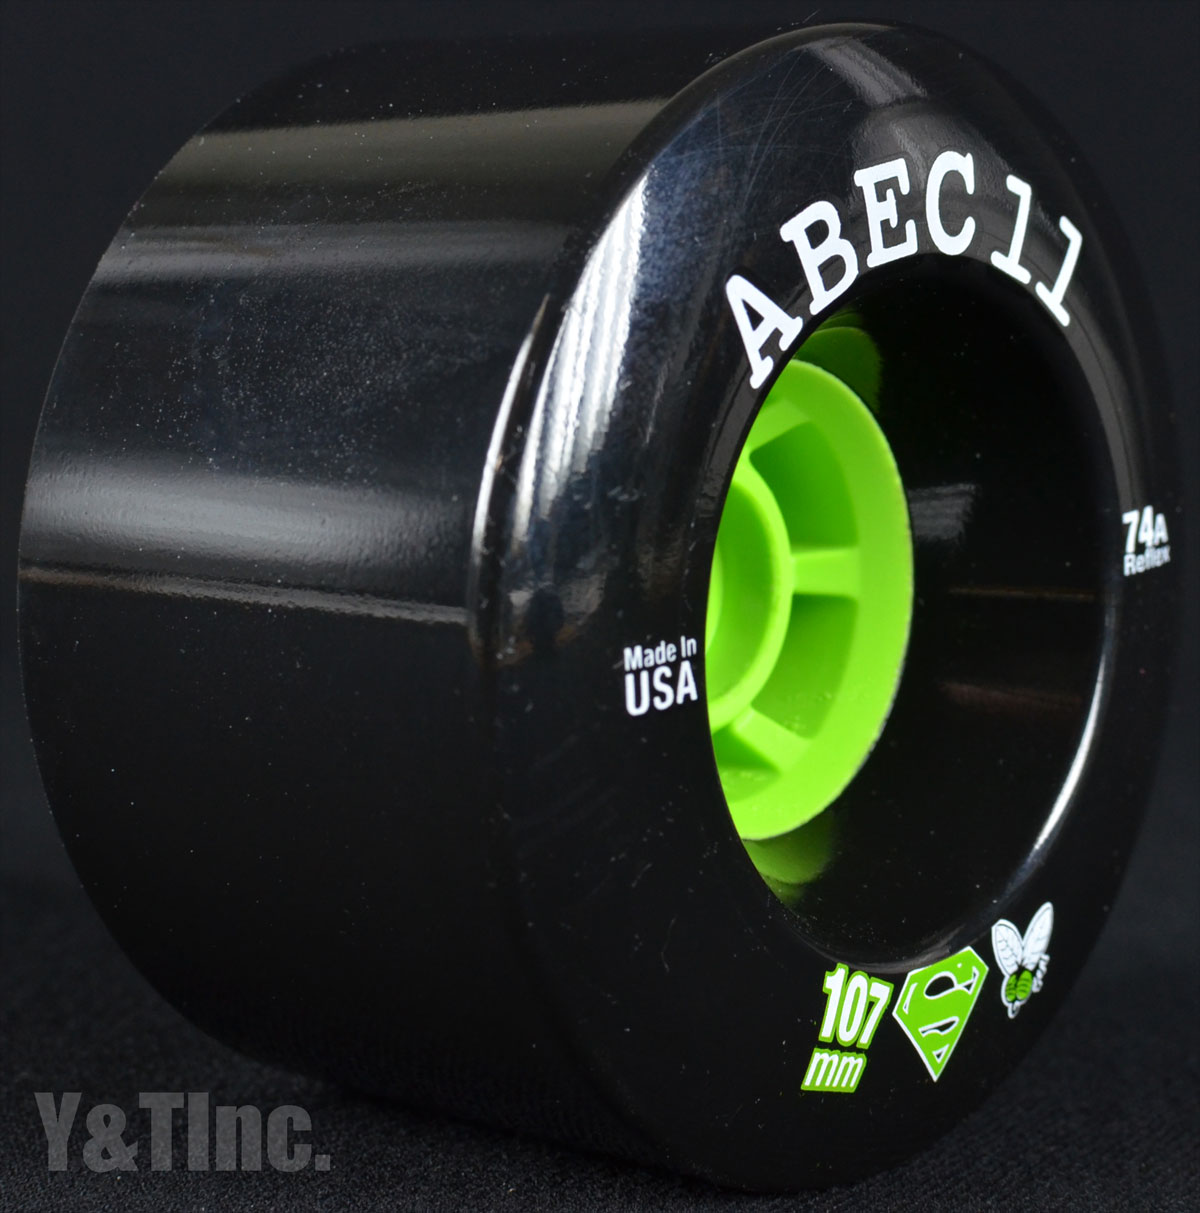 ABEC11 Superfly 107mm 74a Black 2